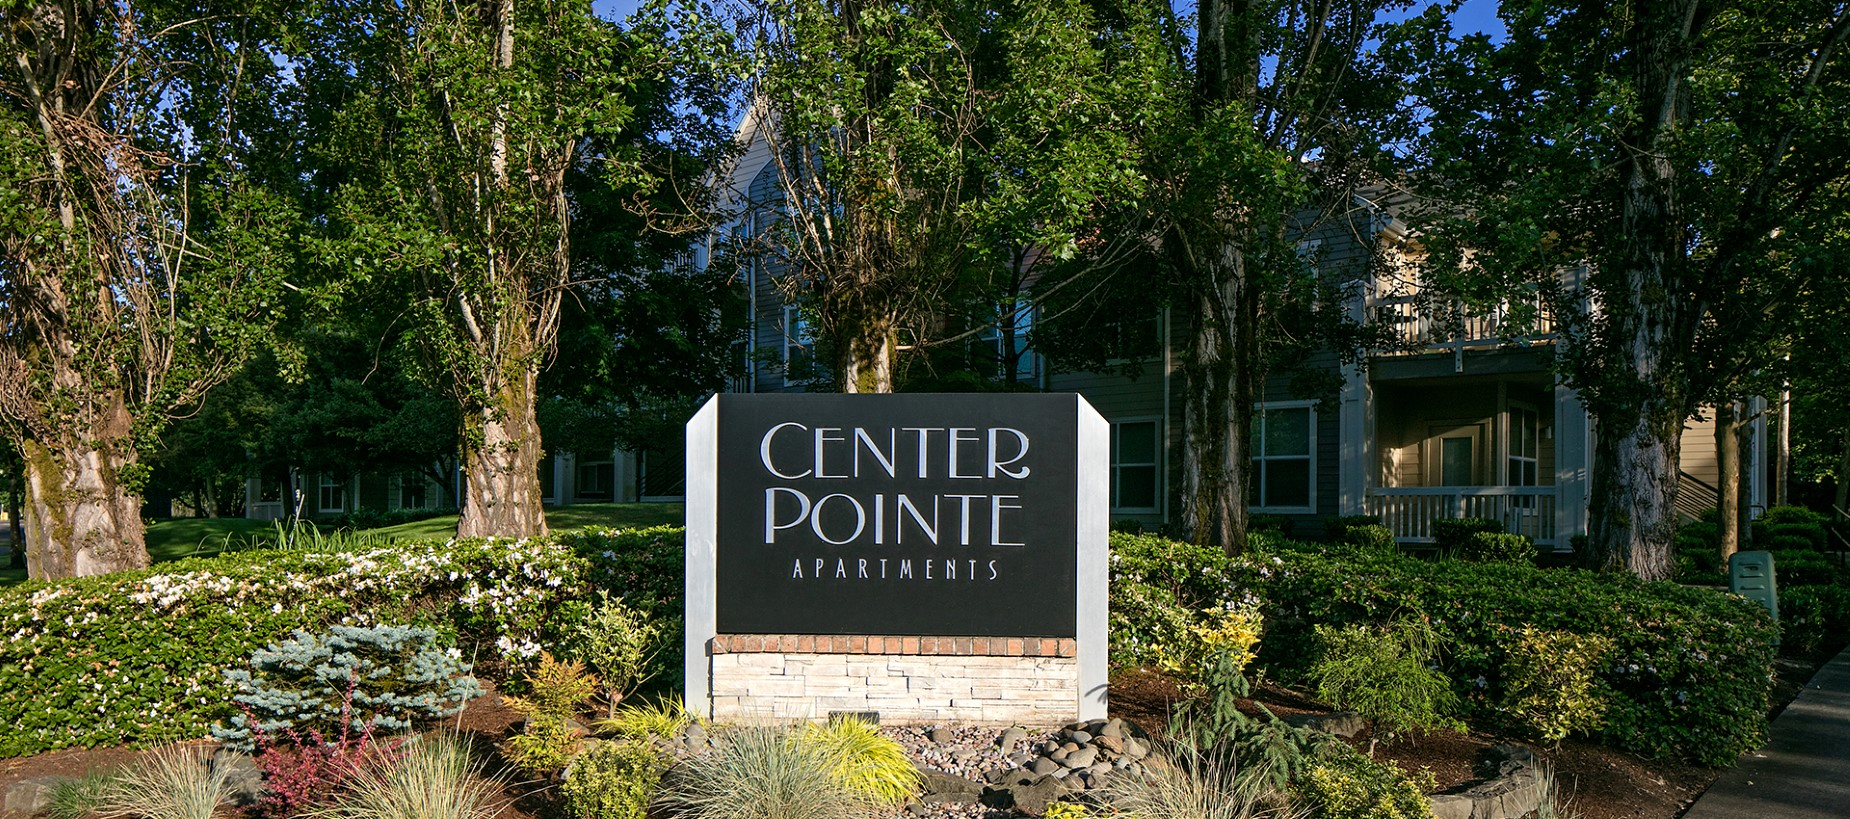 Signage at Center Pointe Apartment Homes in Beaverton, OR